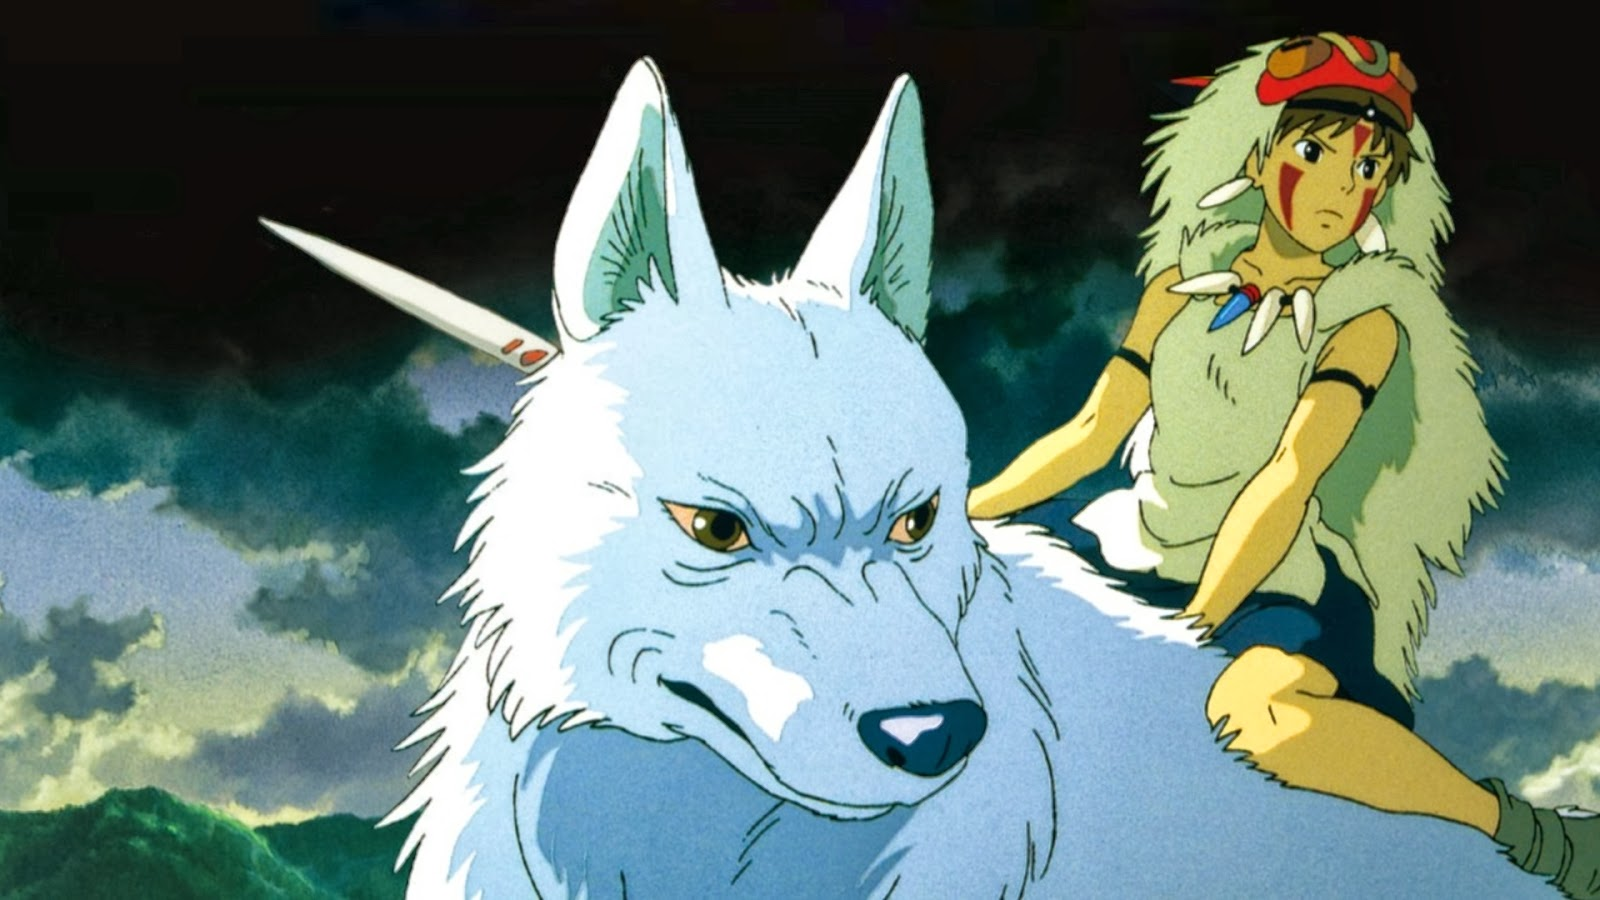 Hd Wallpapers Blog Princess Mononoke Photos